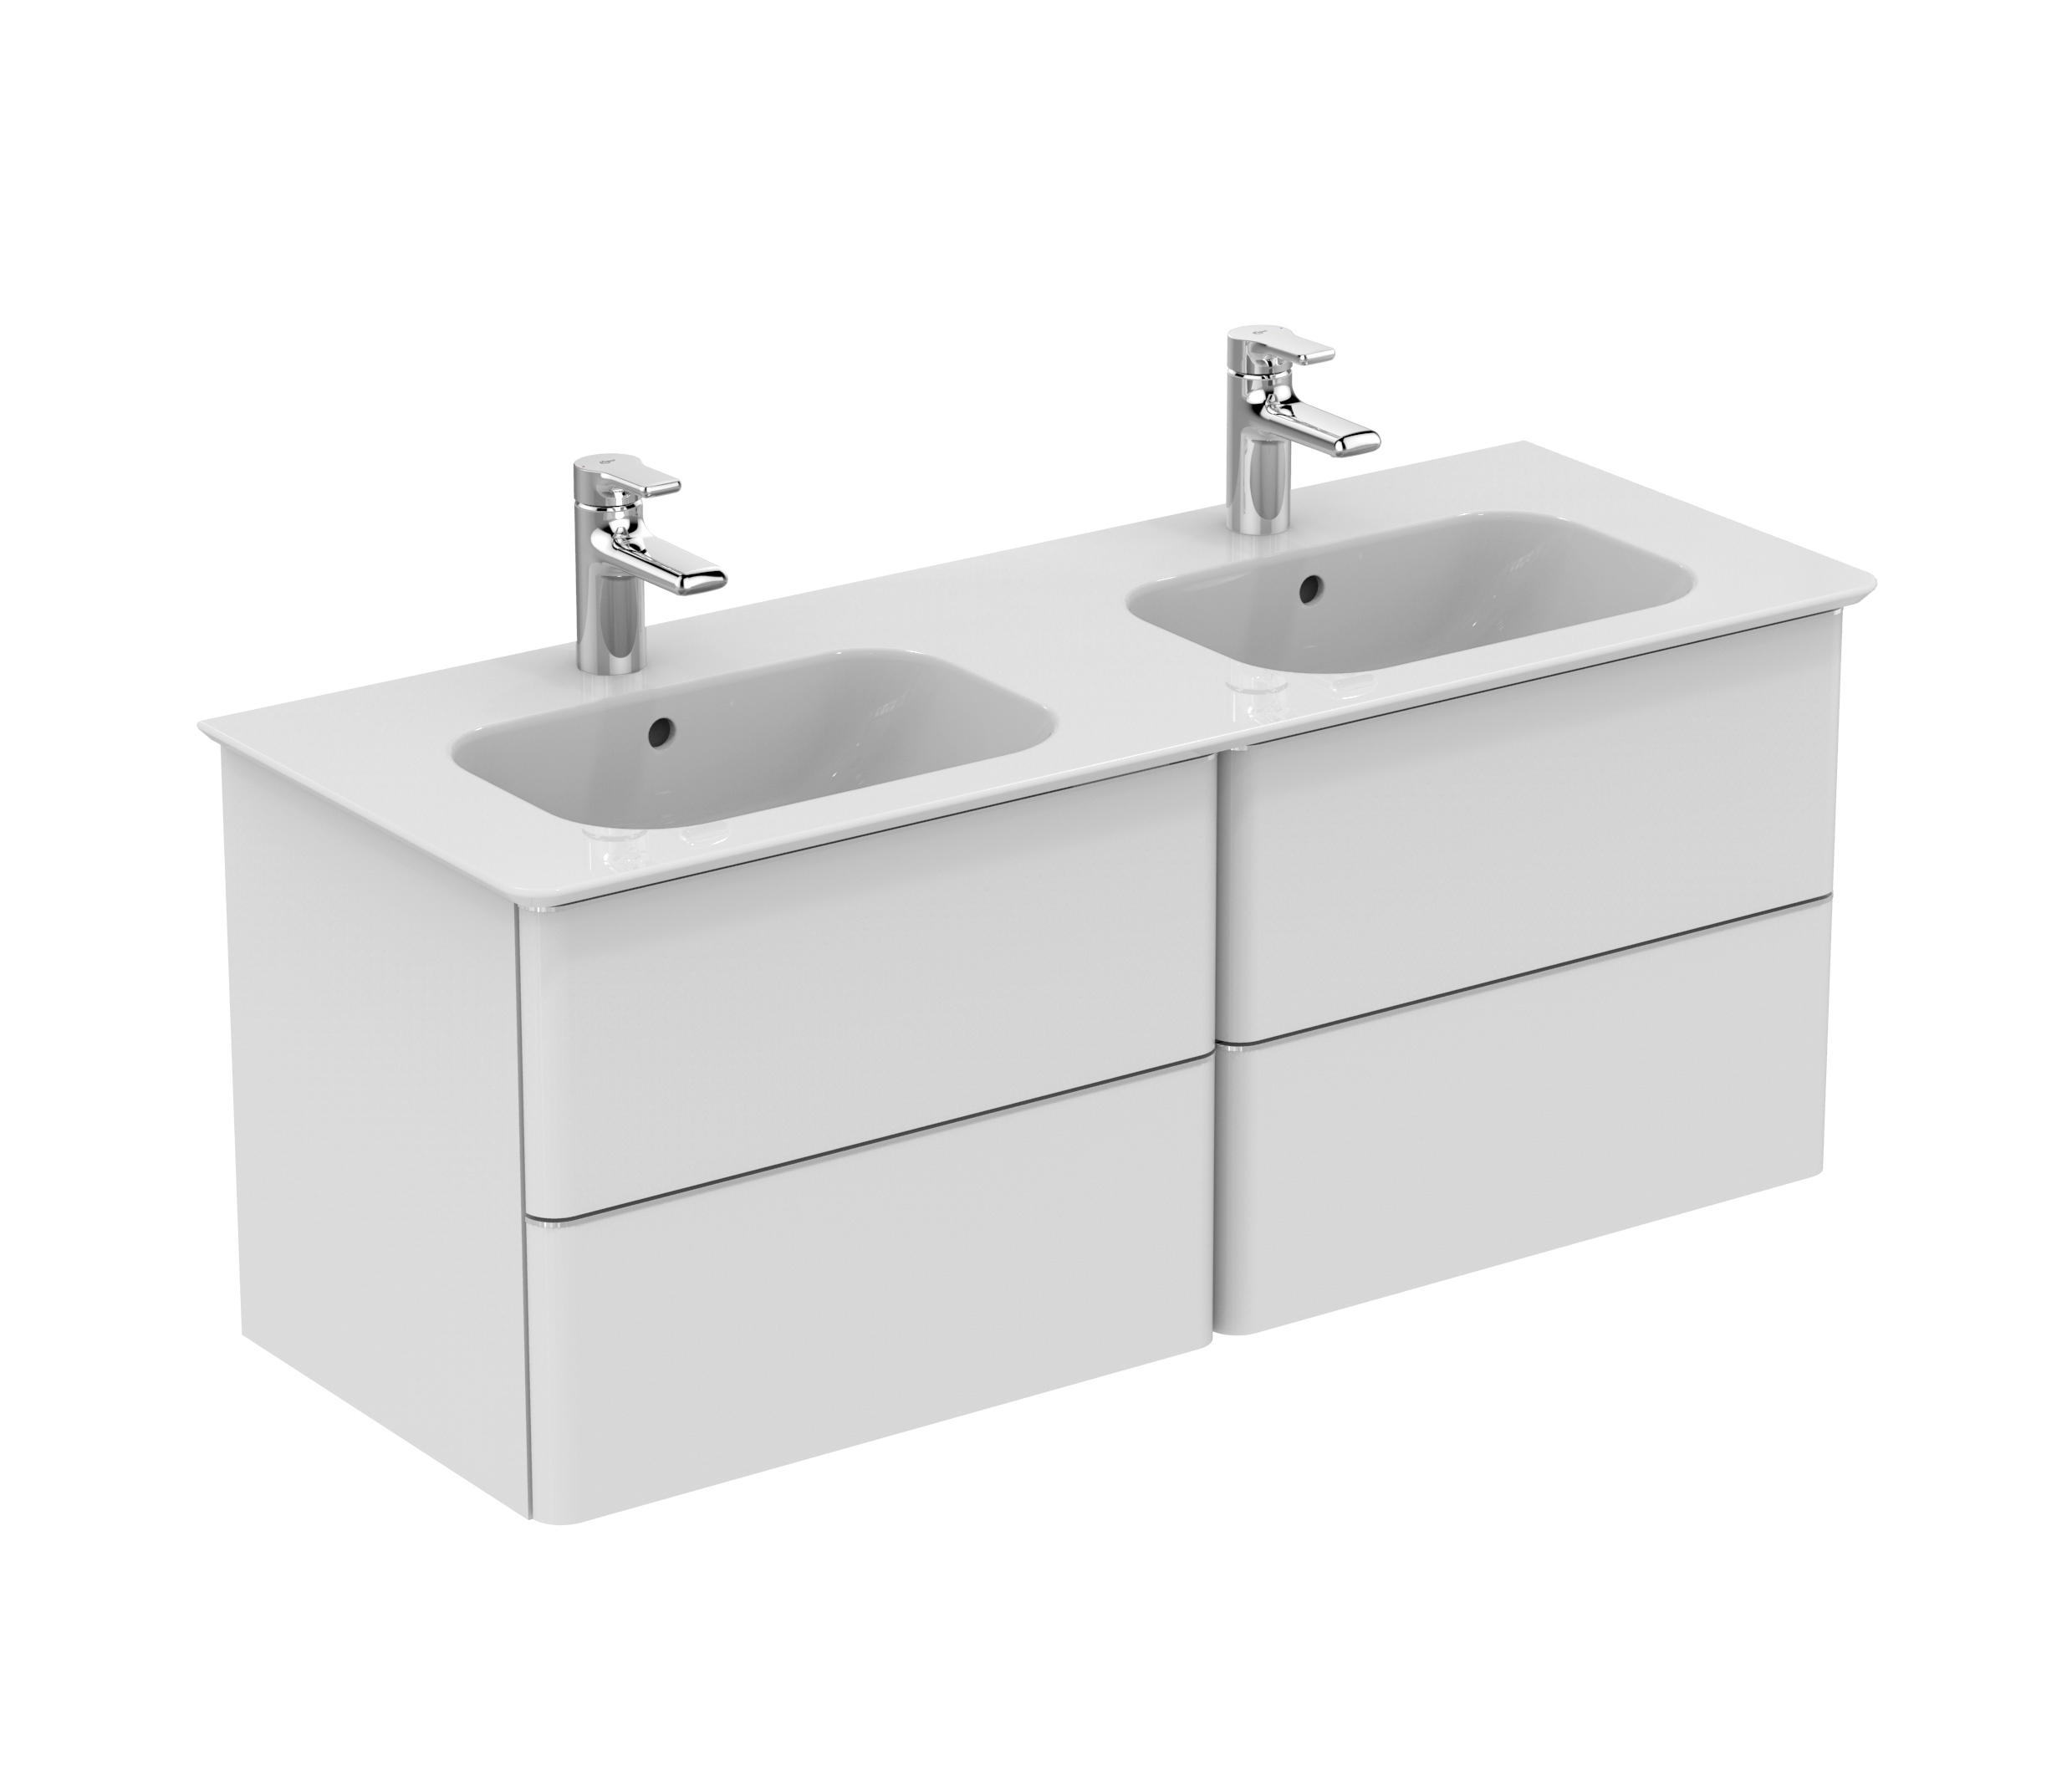 softmood m bel doppelwaschtisch 1200mm wash basins from ideal standard architonic. Black Bedroom Furniture Sets. Home Design Ideas